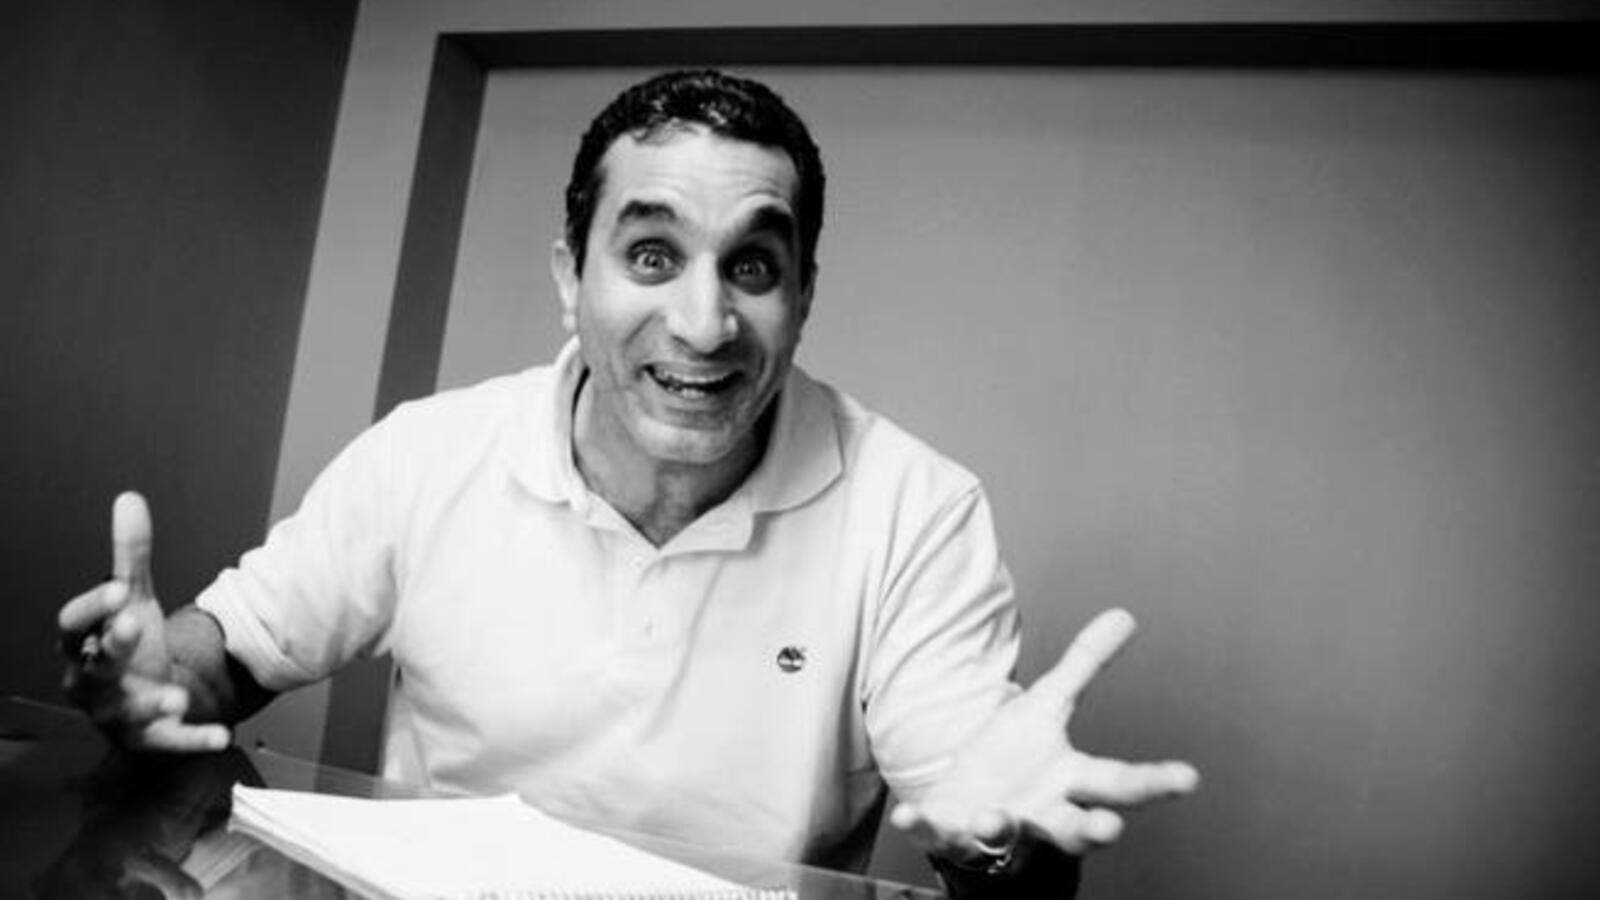 The US Embassy in Cairo caused a Twitter storm after tweeting support for satirical comic Bassem Youssef